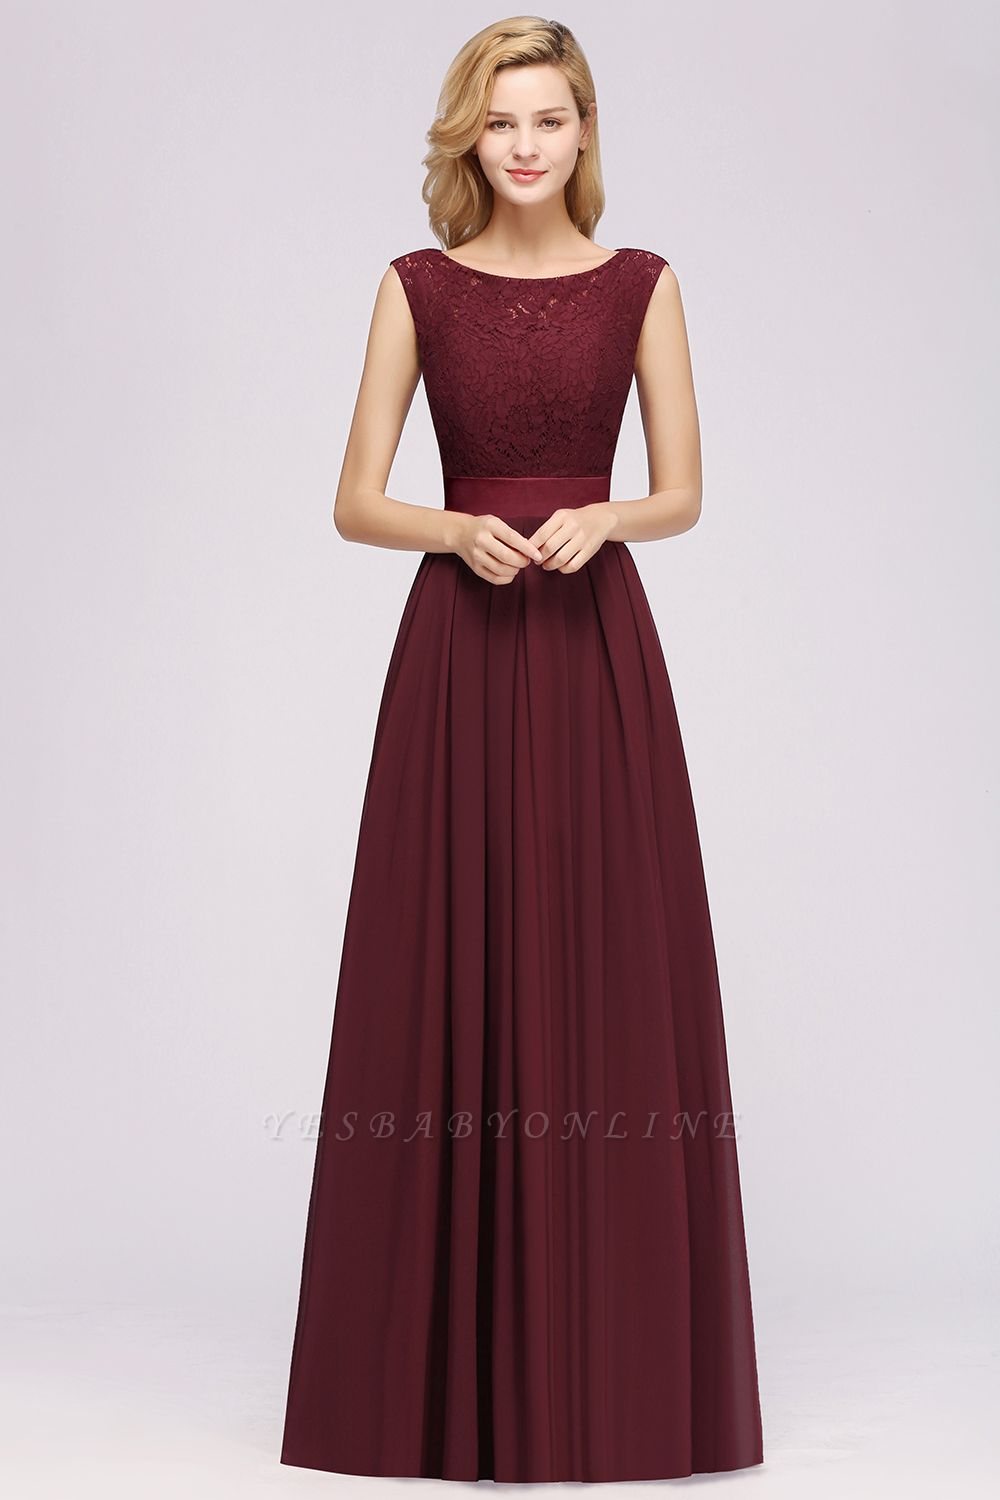 https://www.yesbabyonline.com/g/simple-a-line-chiffon-bridesmaid-dresses-scoop-sleeveless-lace-appliques-maid-of-the-honor-dresses-109687.html?utm_source=blog&utm_medium=theversicle&utm_campaign=post&source=theversicle